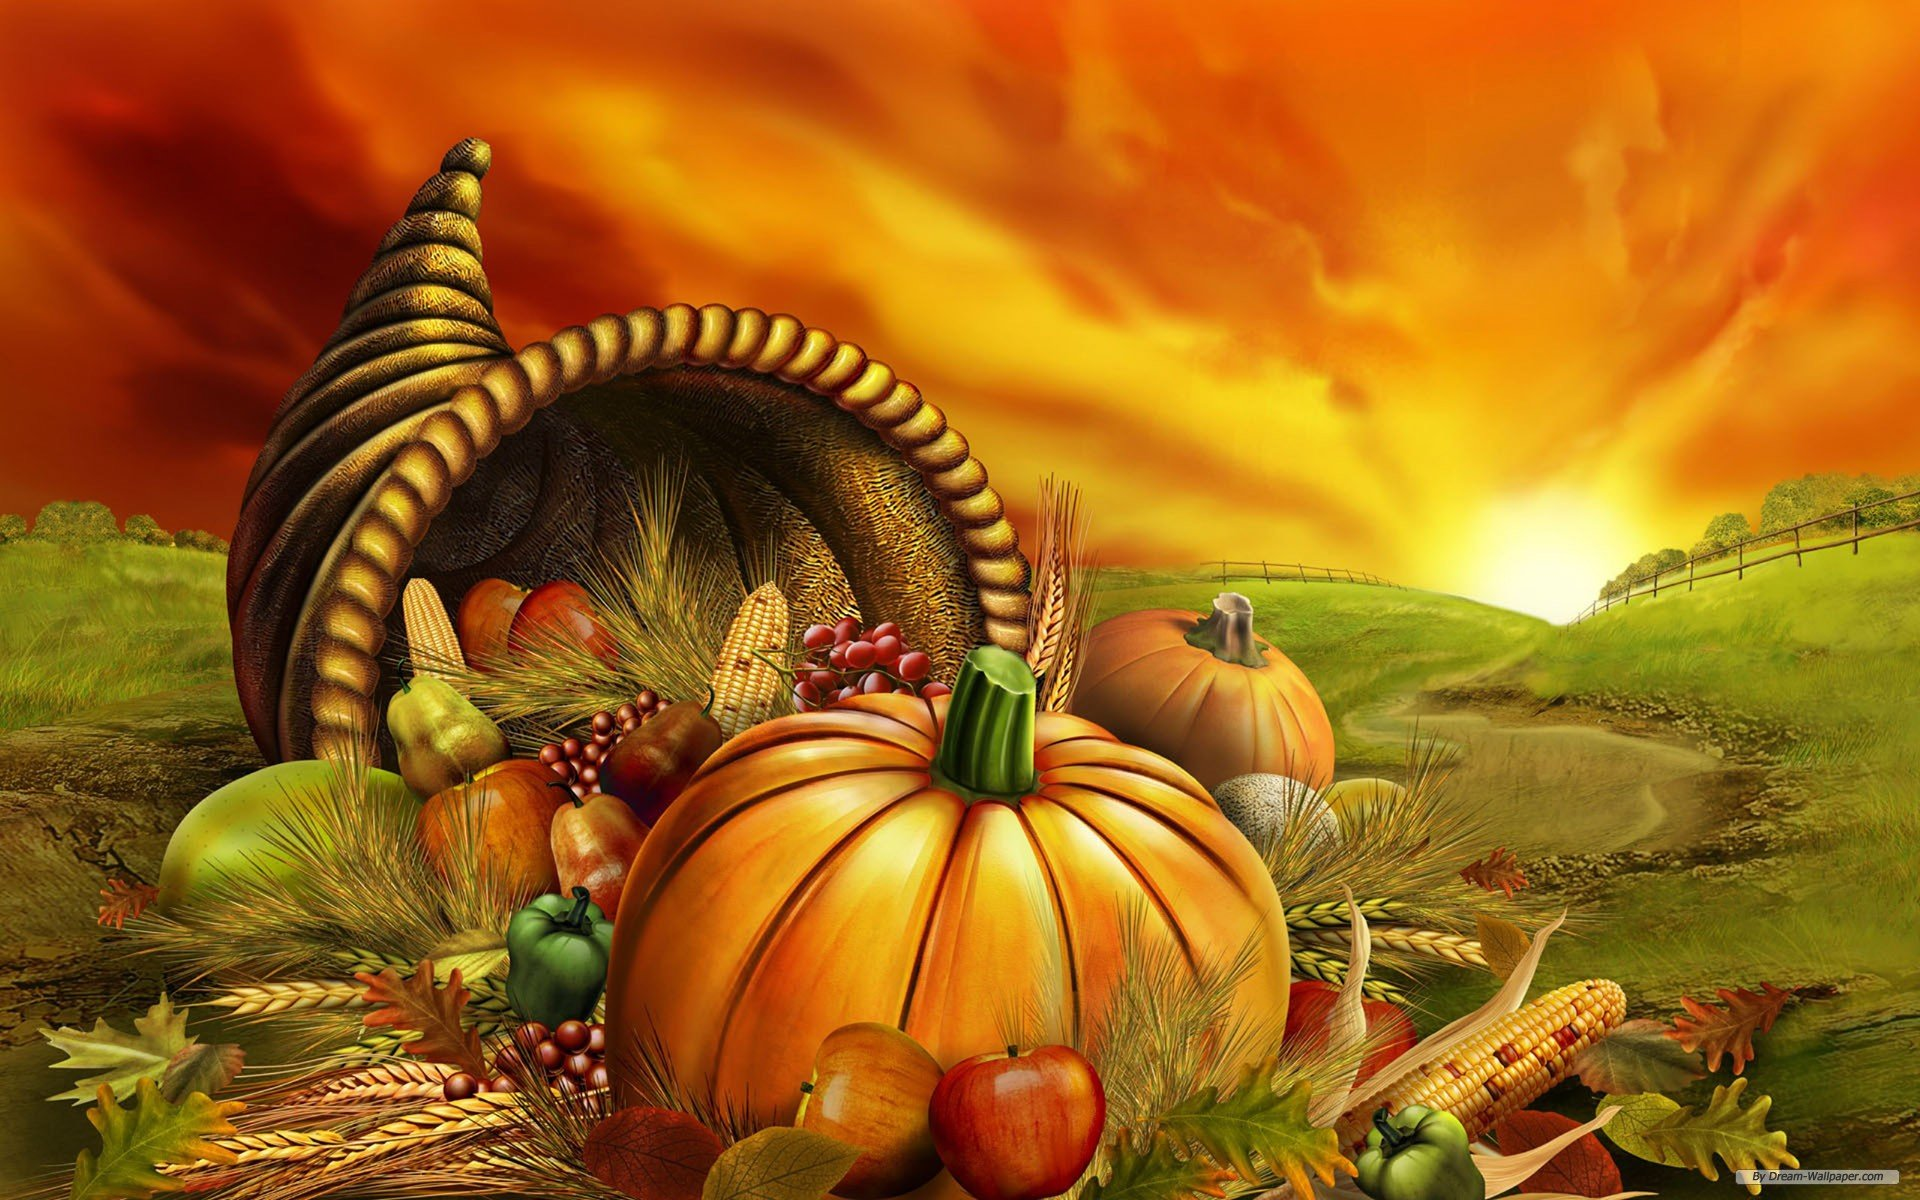 Holiday wallpaper Thanksgiving Day wallpaper 19201200 1920x1200